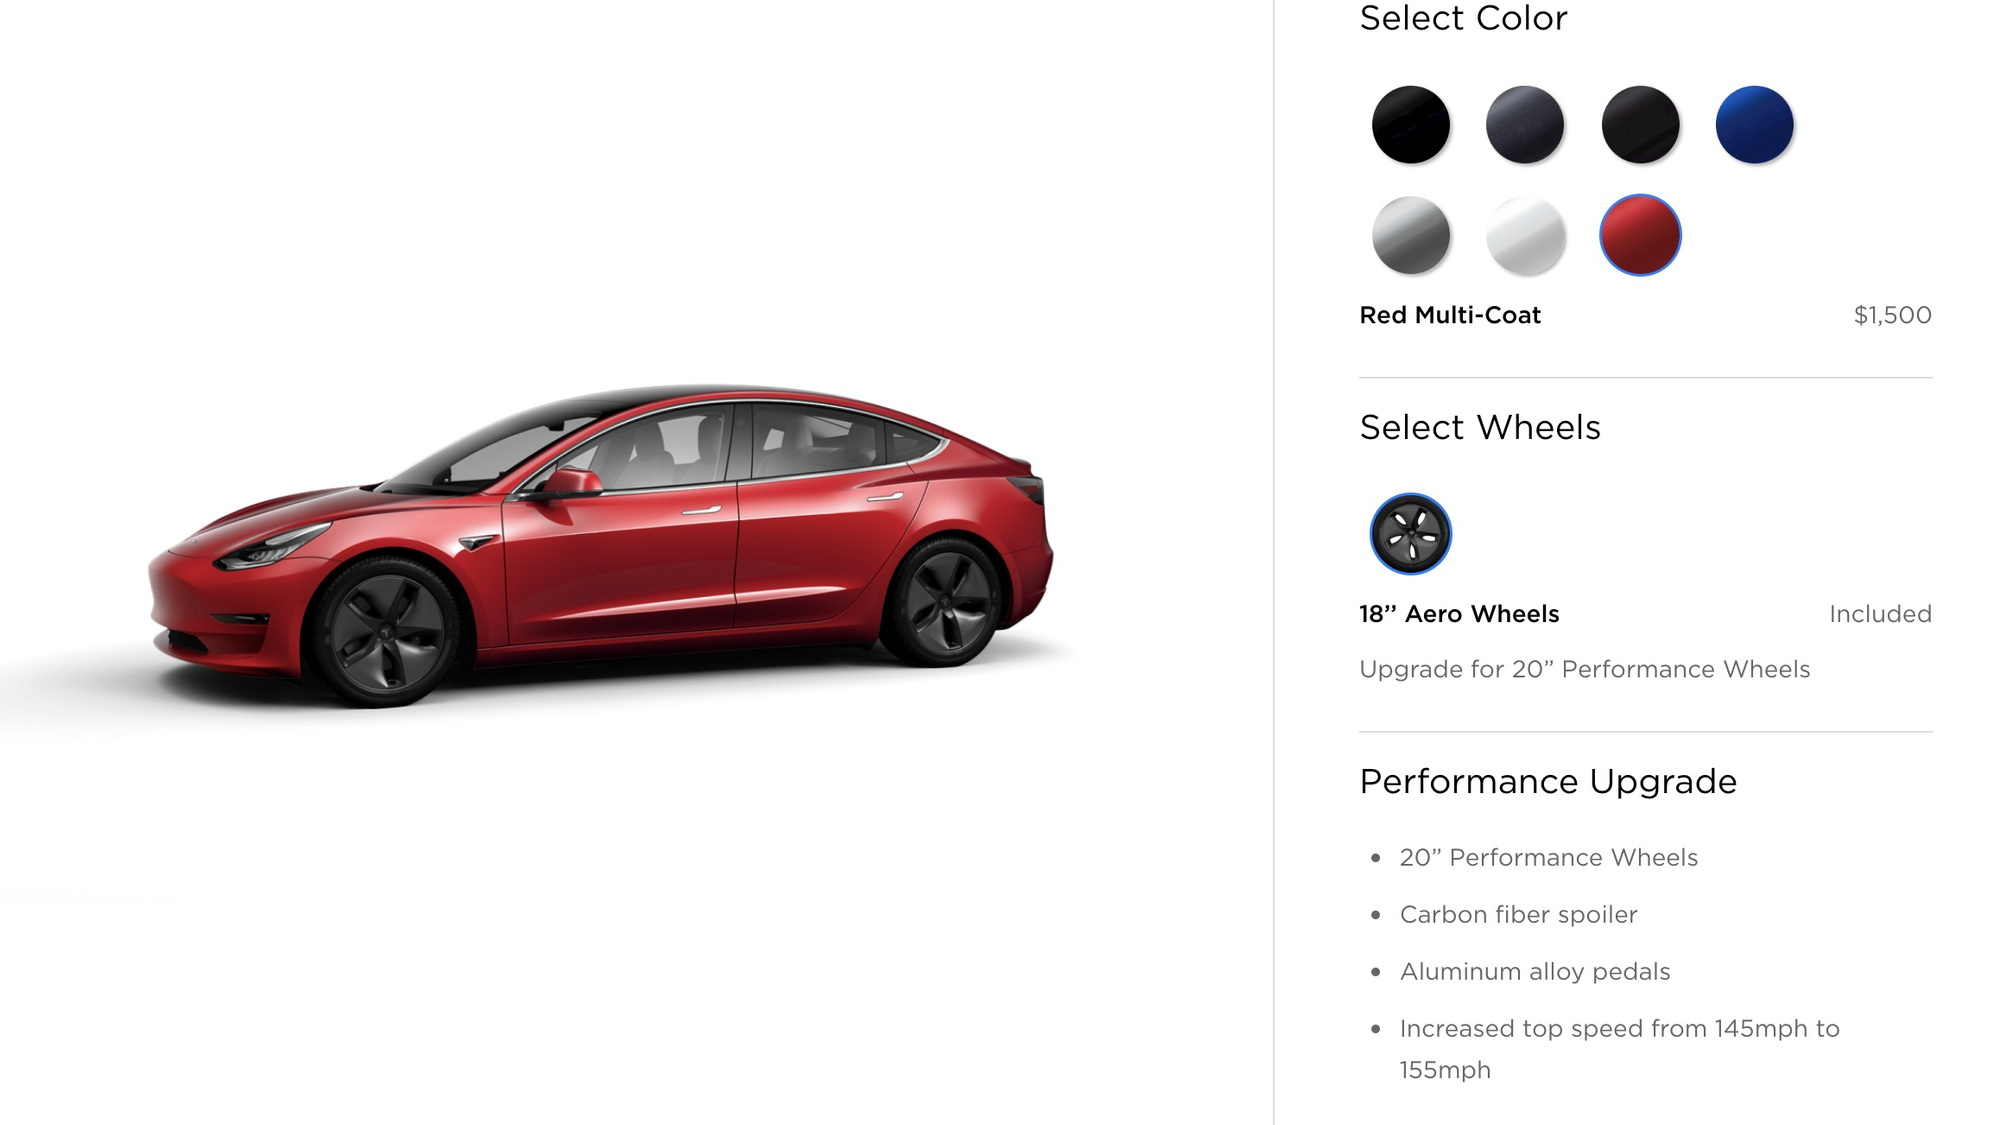 Tesla Model 3 order configurator 6/18 color and wheels [Image via Teslarati]